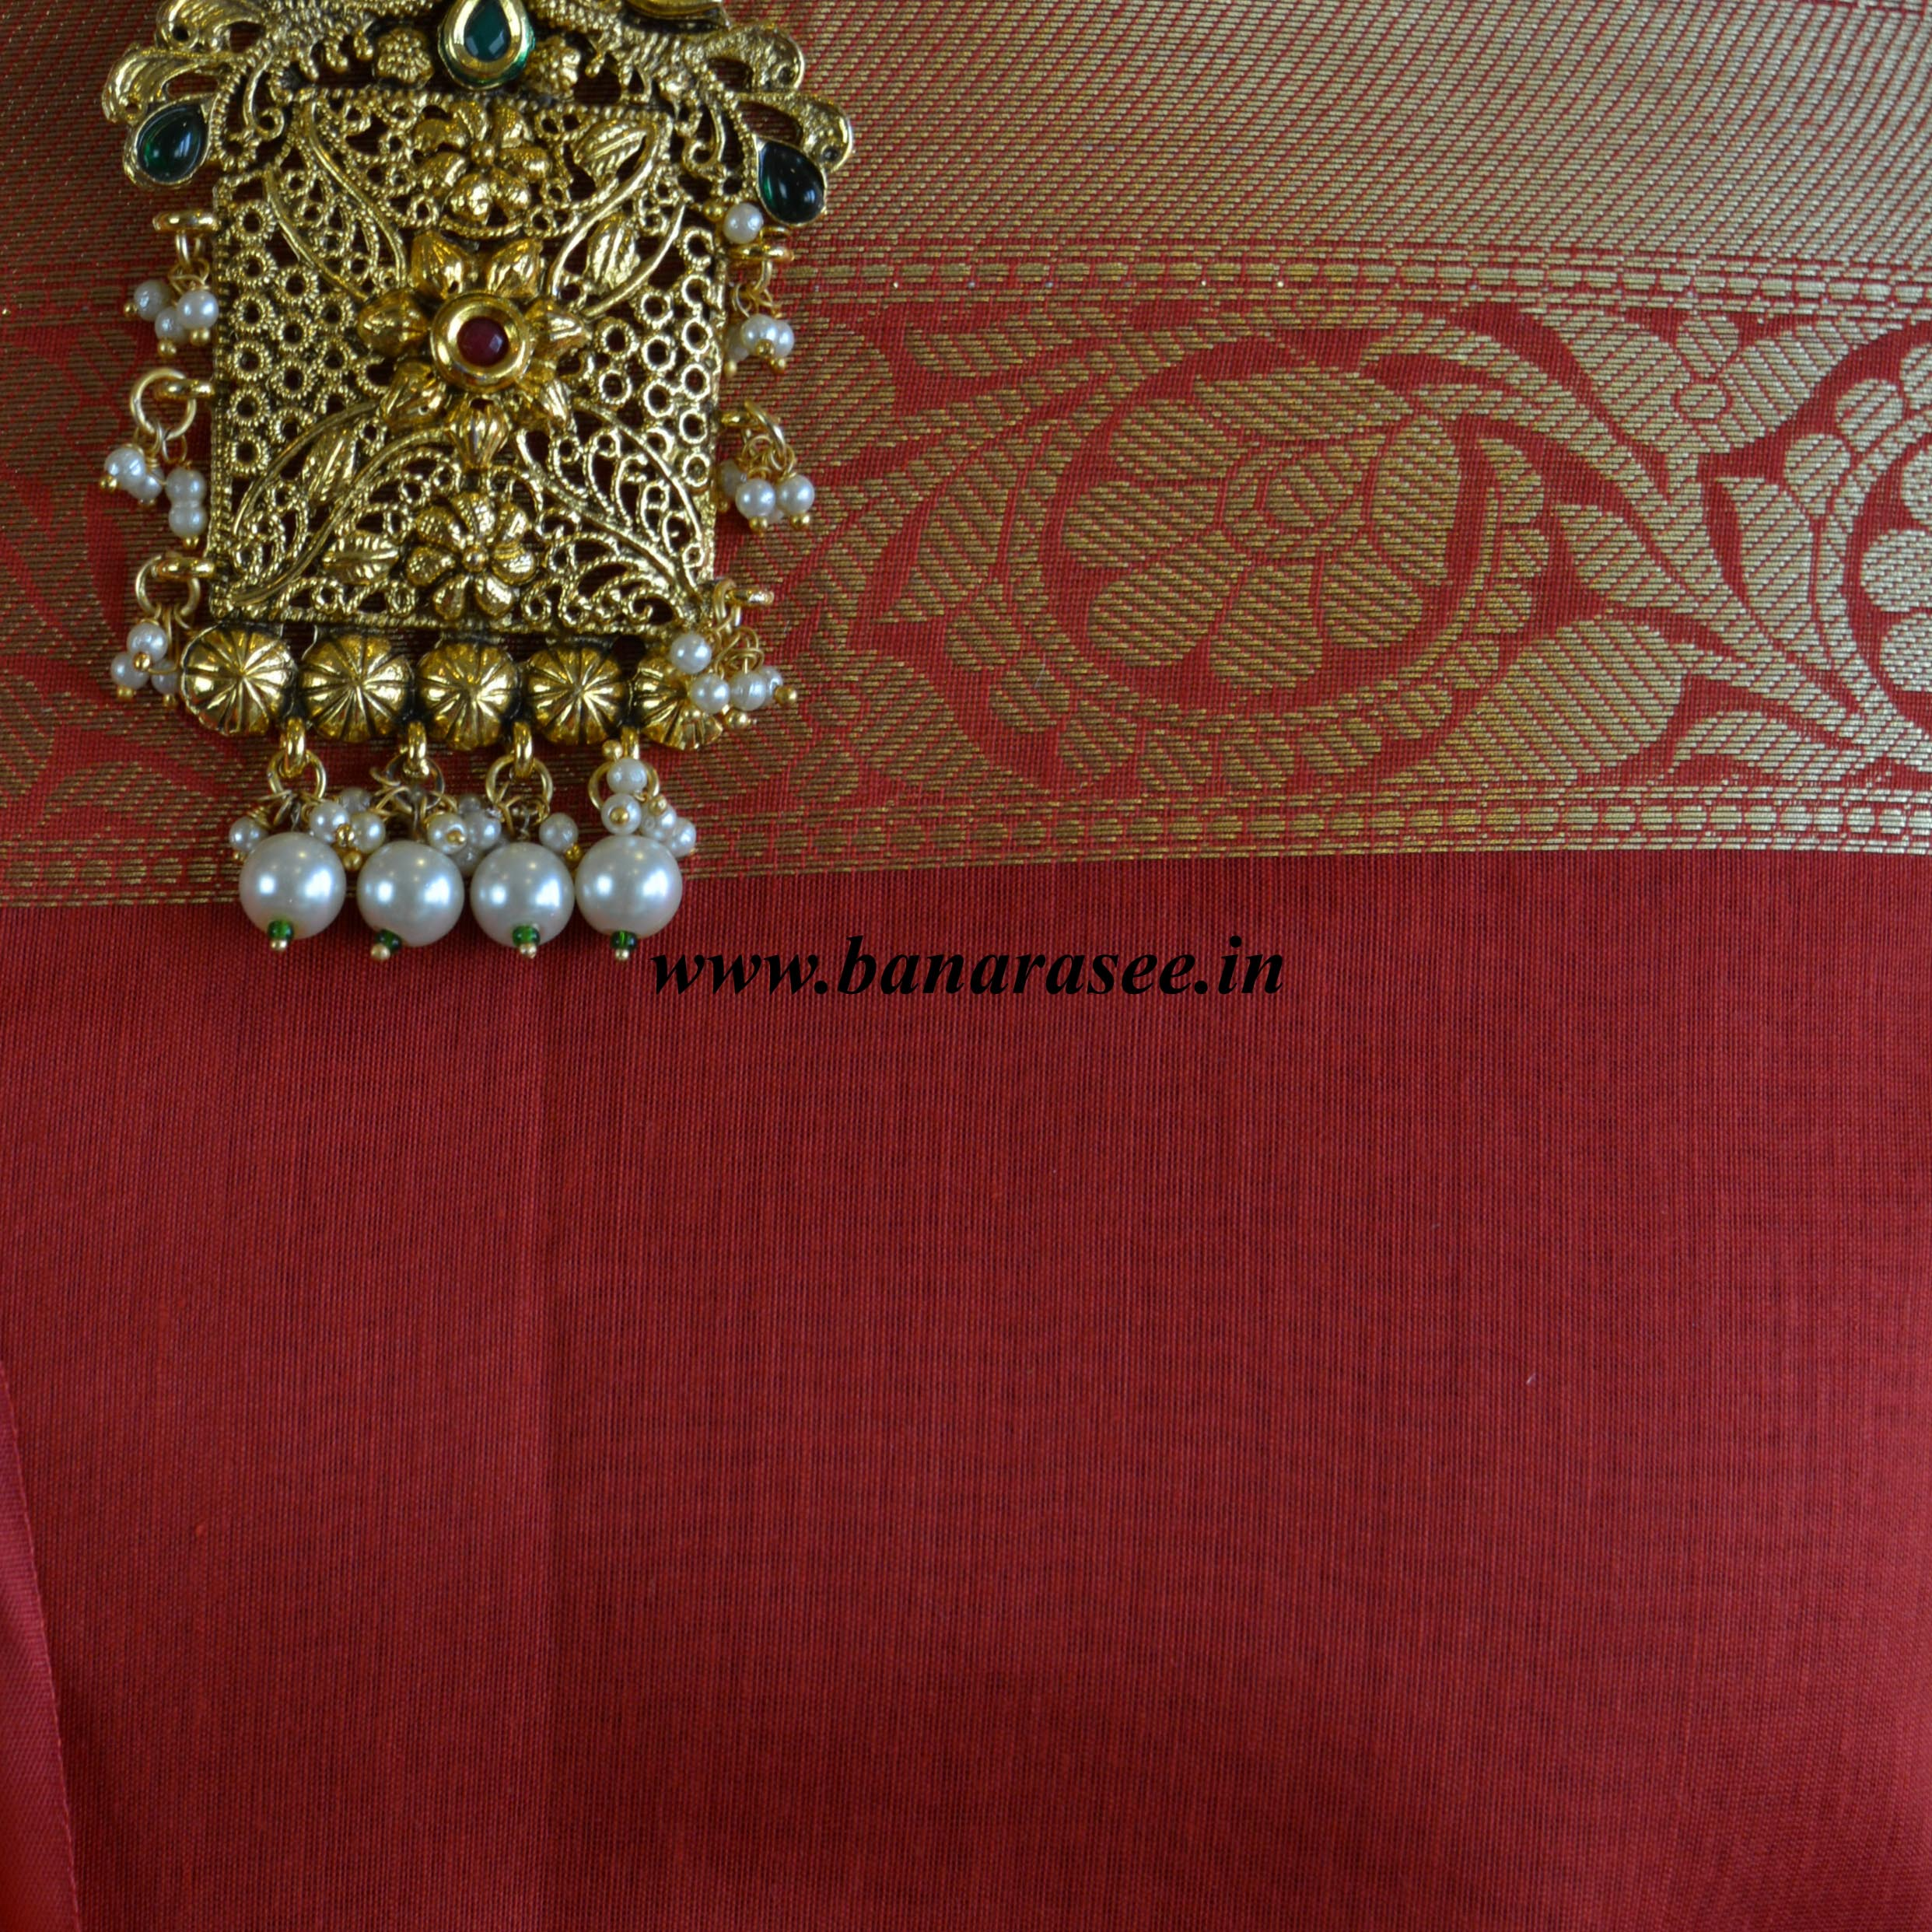 Banarasee Chanderi Cotton Salwar Kameez Fabric With Zari Dupatta-Red